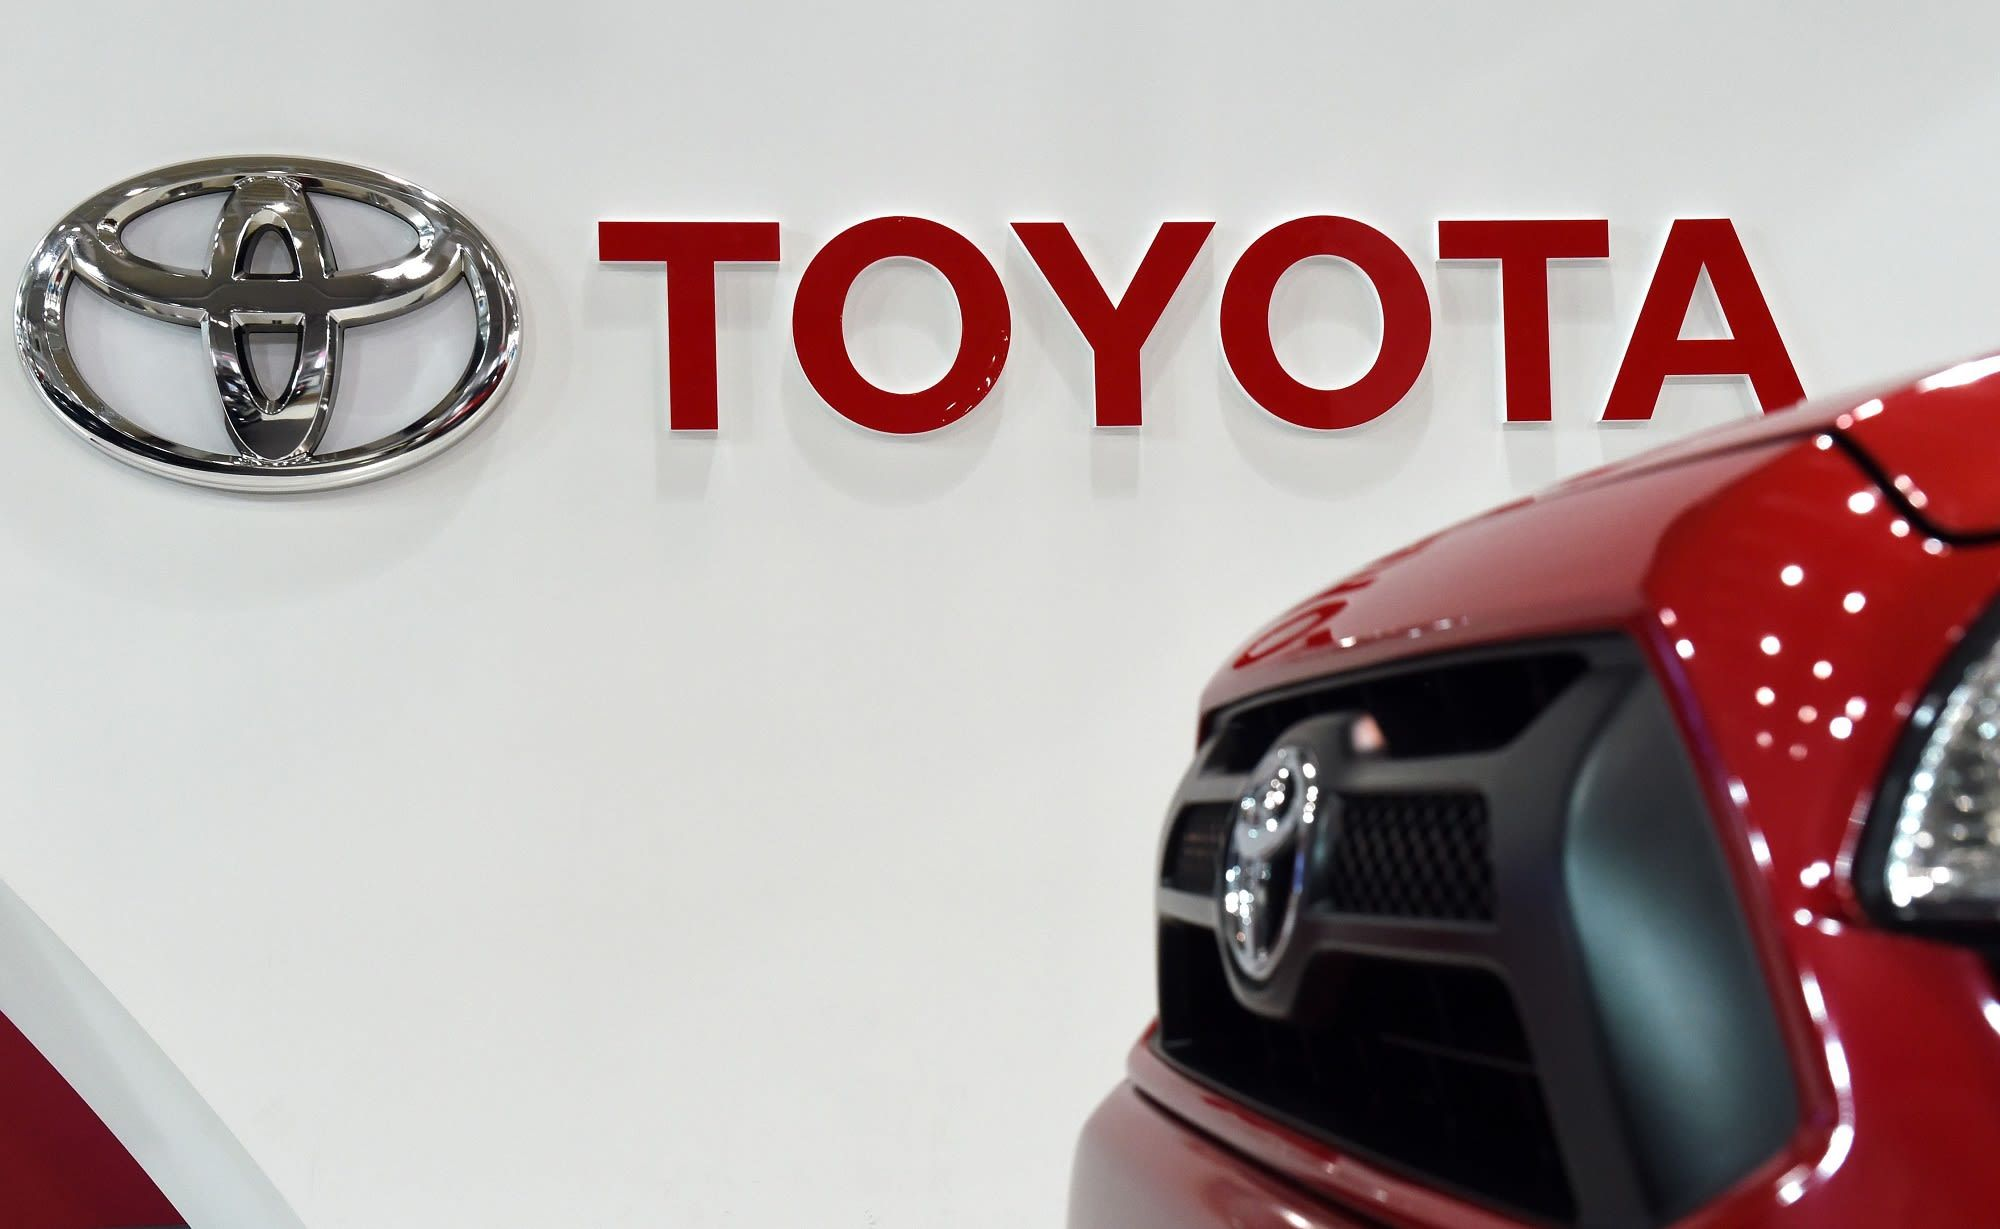 Toyota Says Trump S Latest Tariff Threat Shows Japanese Investments In Us Not Welcomed Toyota Investing Threat